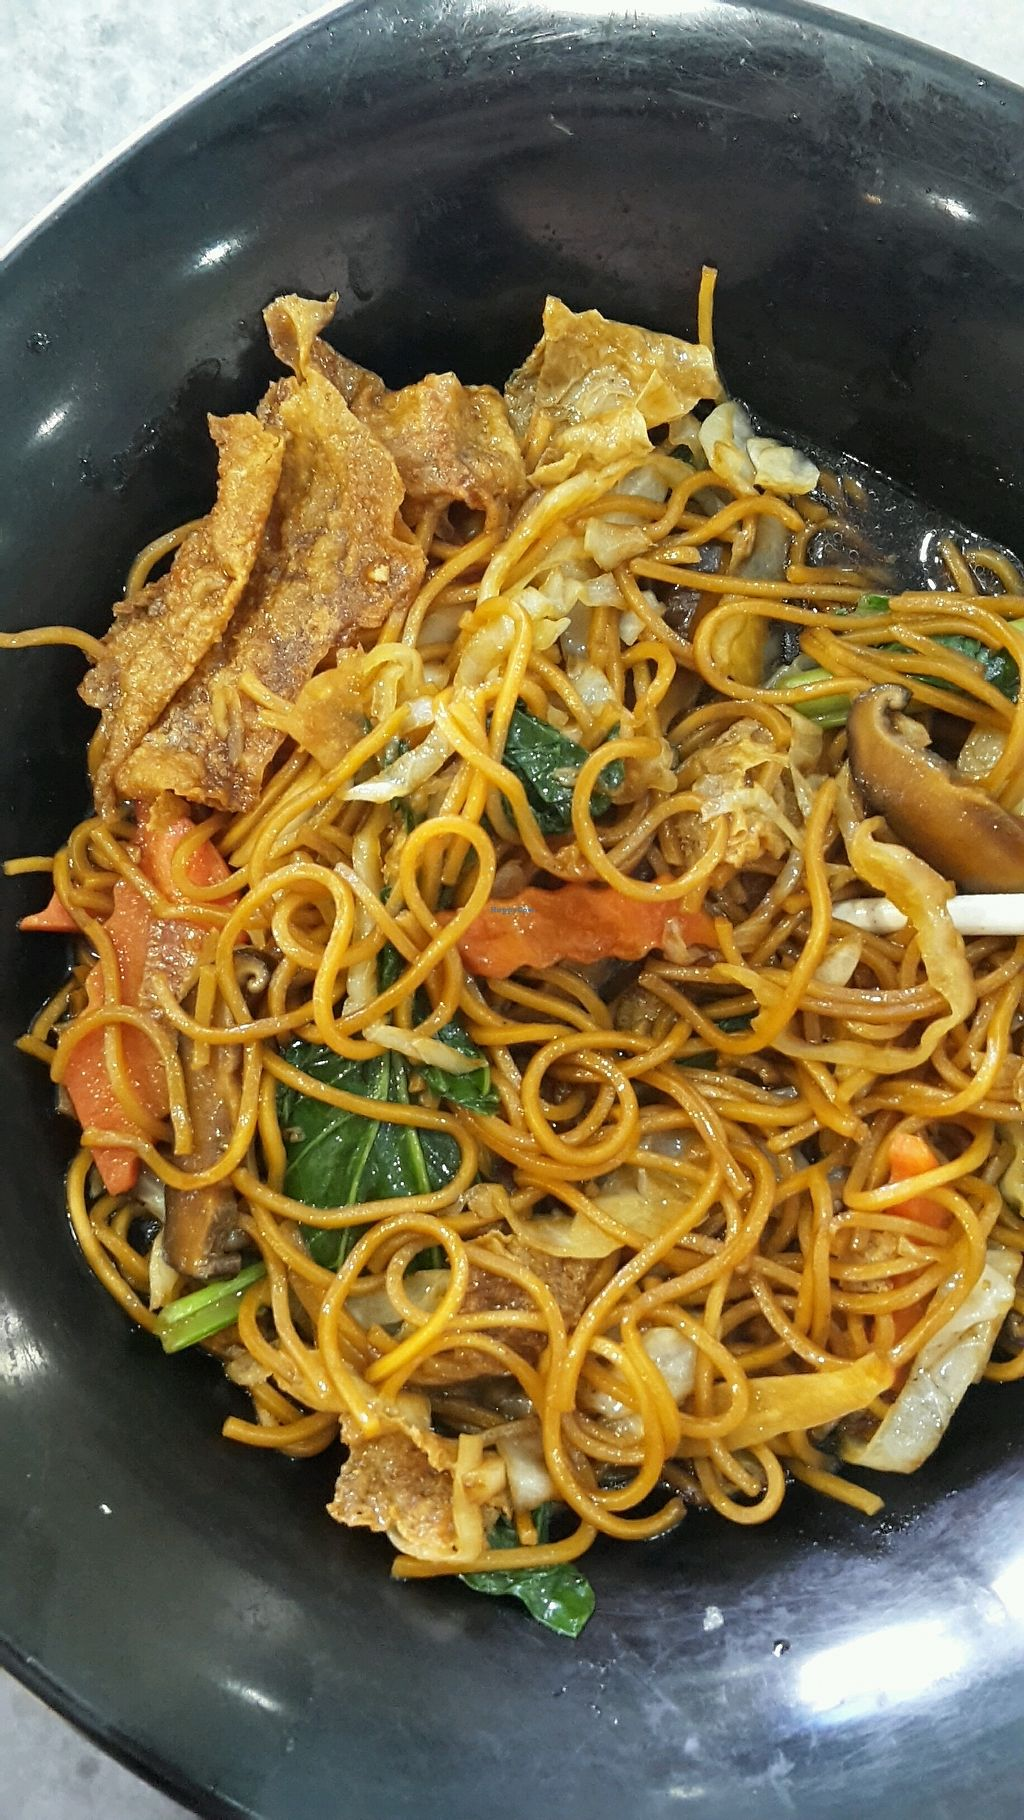 """Photo of Vege Life Cafe  by <a href=""""/members/profile/veggiegirl08"""">veggiegirl08</a> <br/>noodle dish  <br/> February 21, 2018  - <a href='/contact/abuse/image/20047/361937'>Report</a>"""